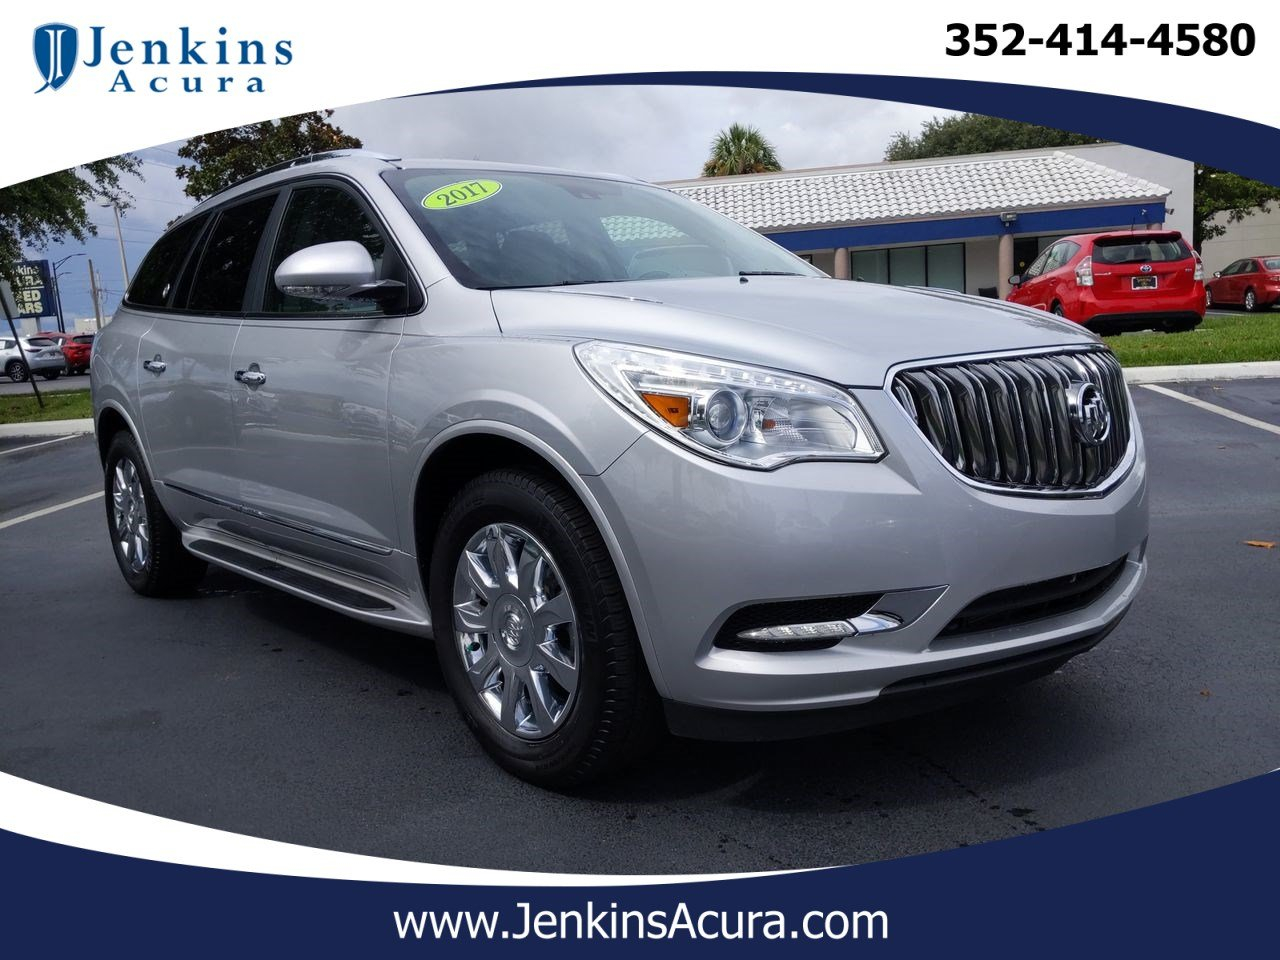 2017 Used Buick Enclave For Sale | Ocala Fl | A11375A 2021 Buick Enclave Interior Colors, Heads Up Display, Incentives